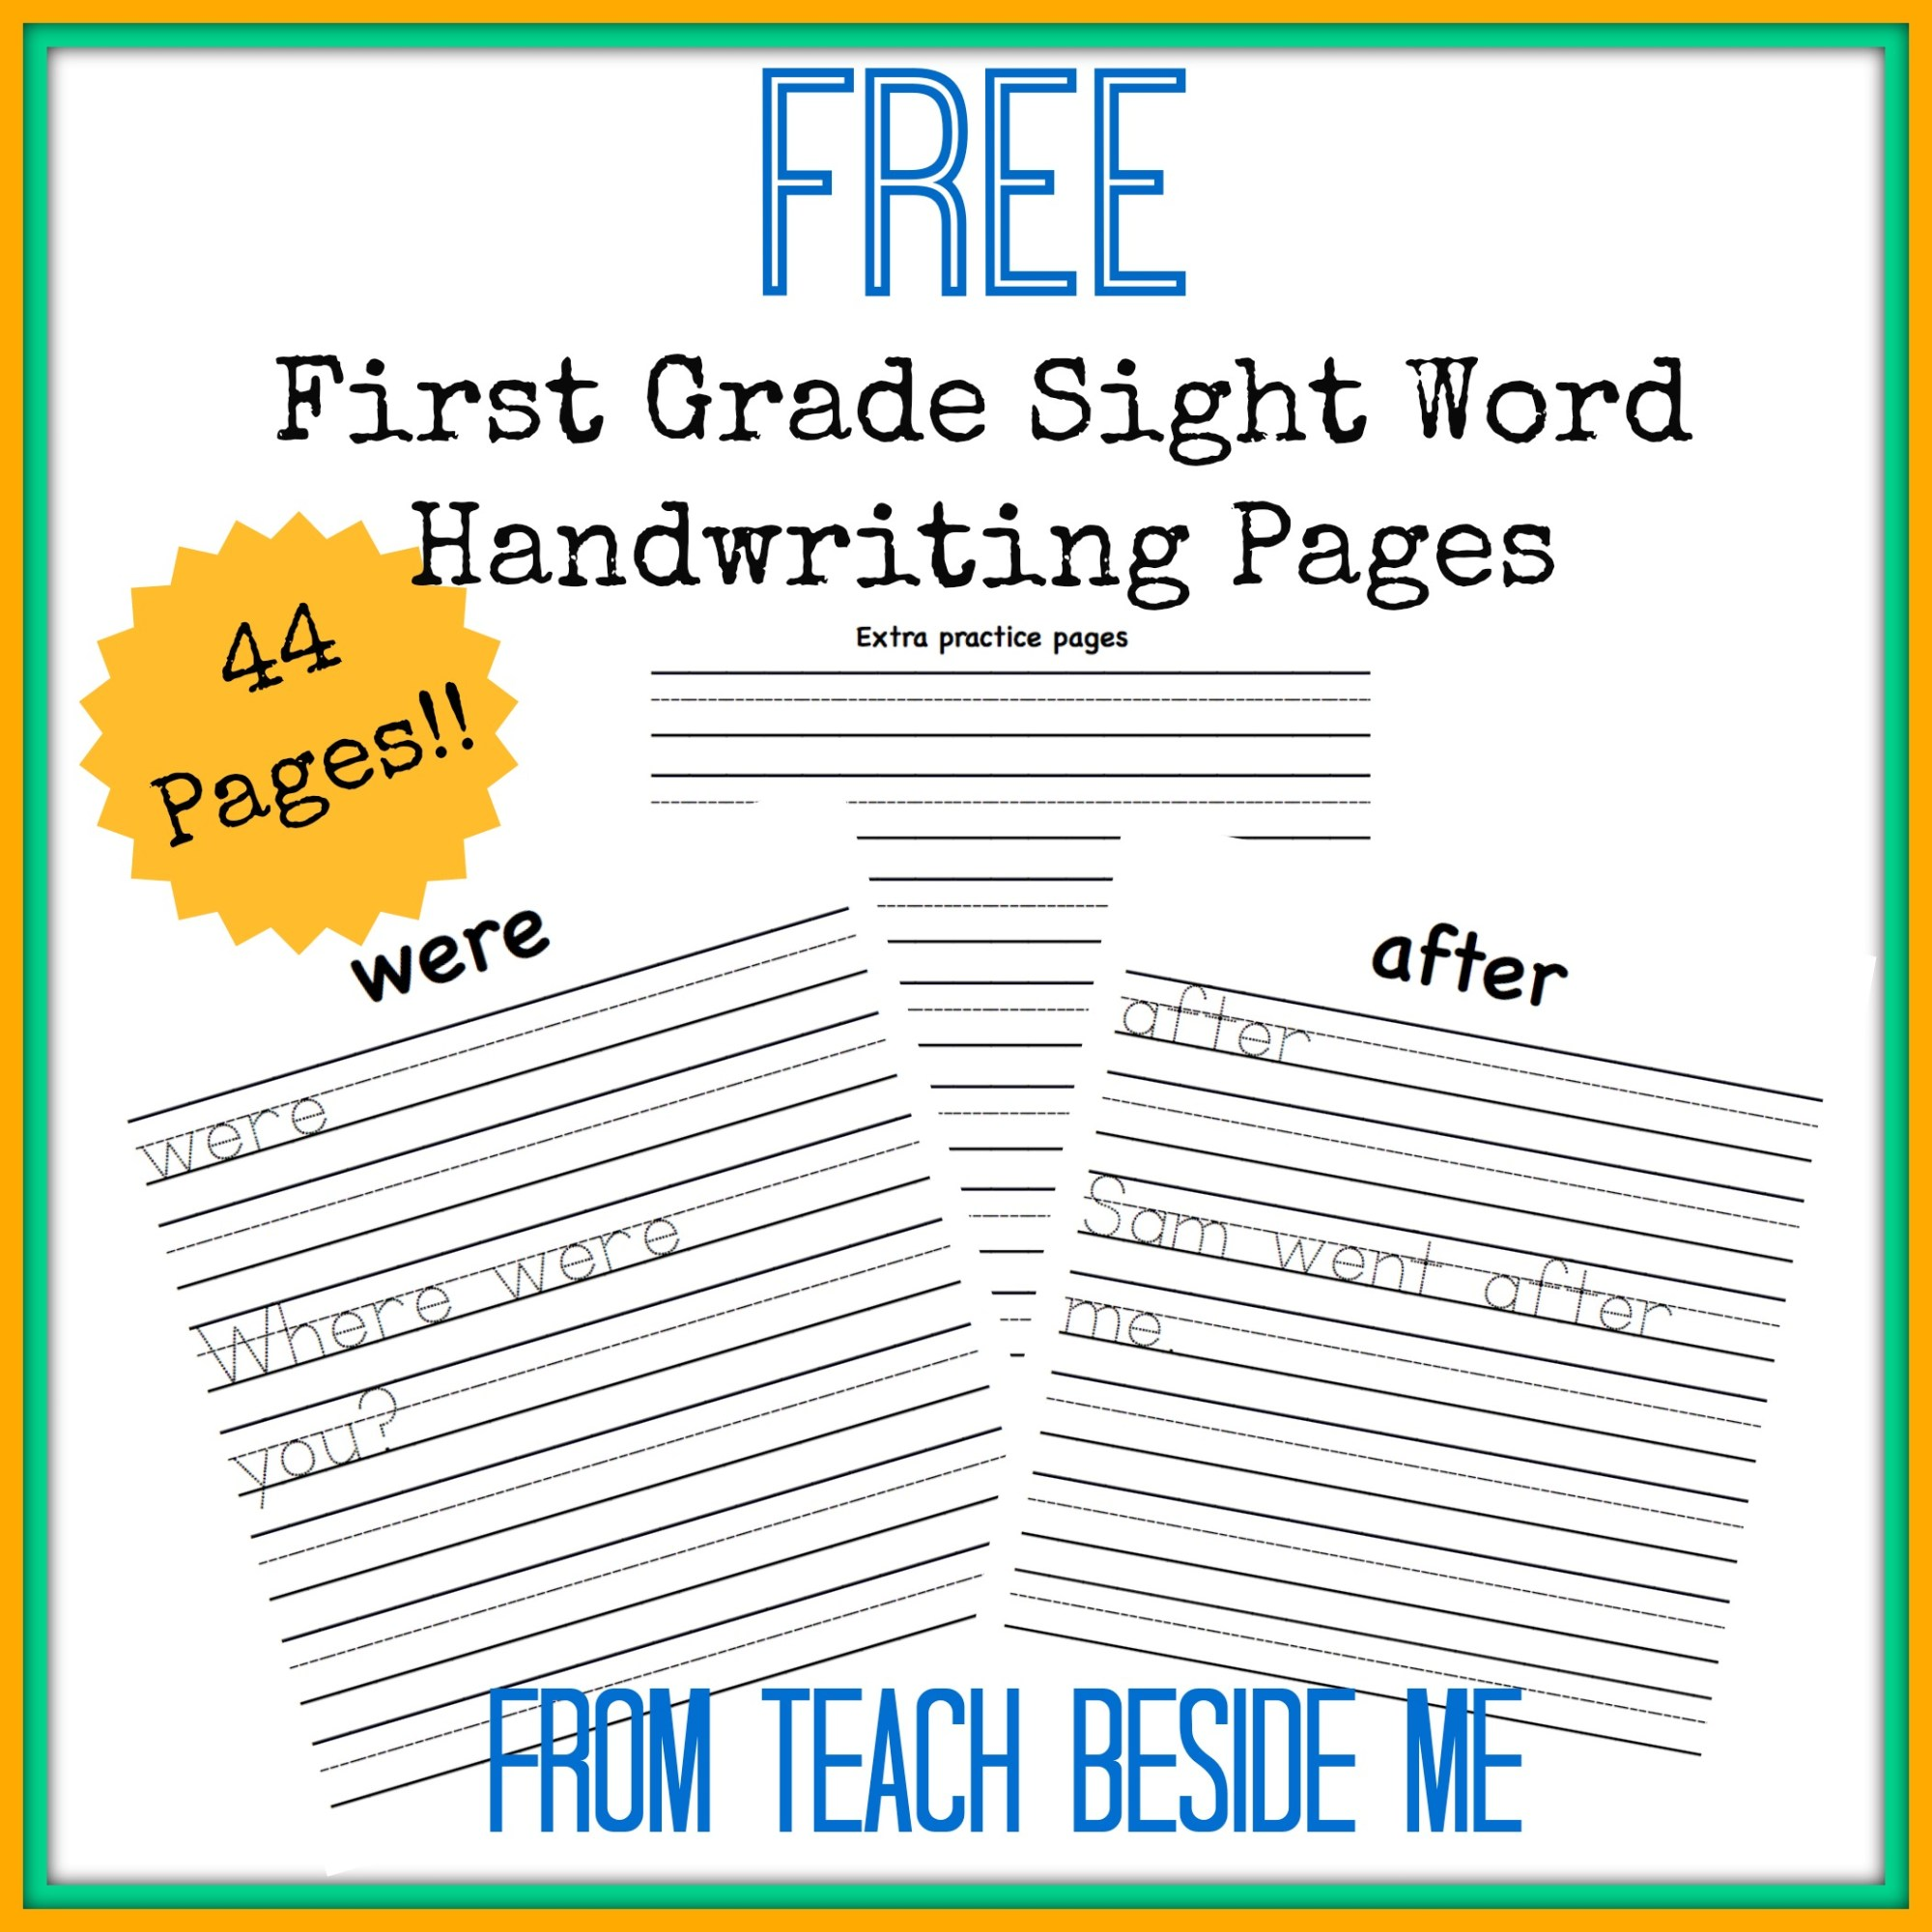 hight resolution of Free First Grade Sight Word Handwriting Pages